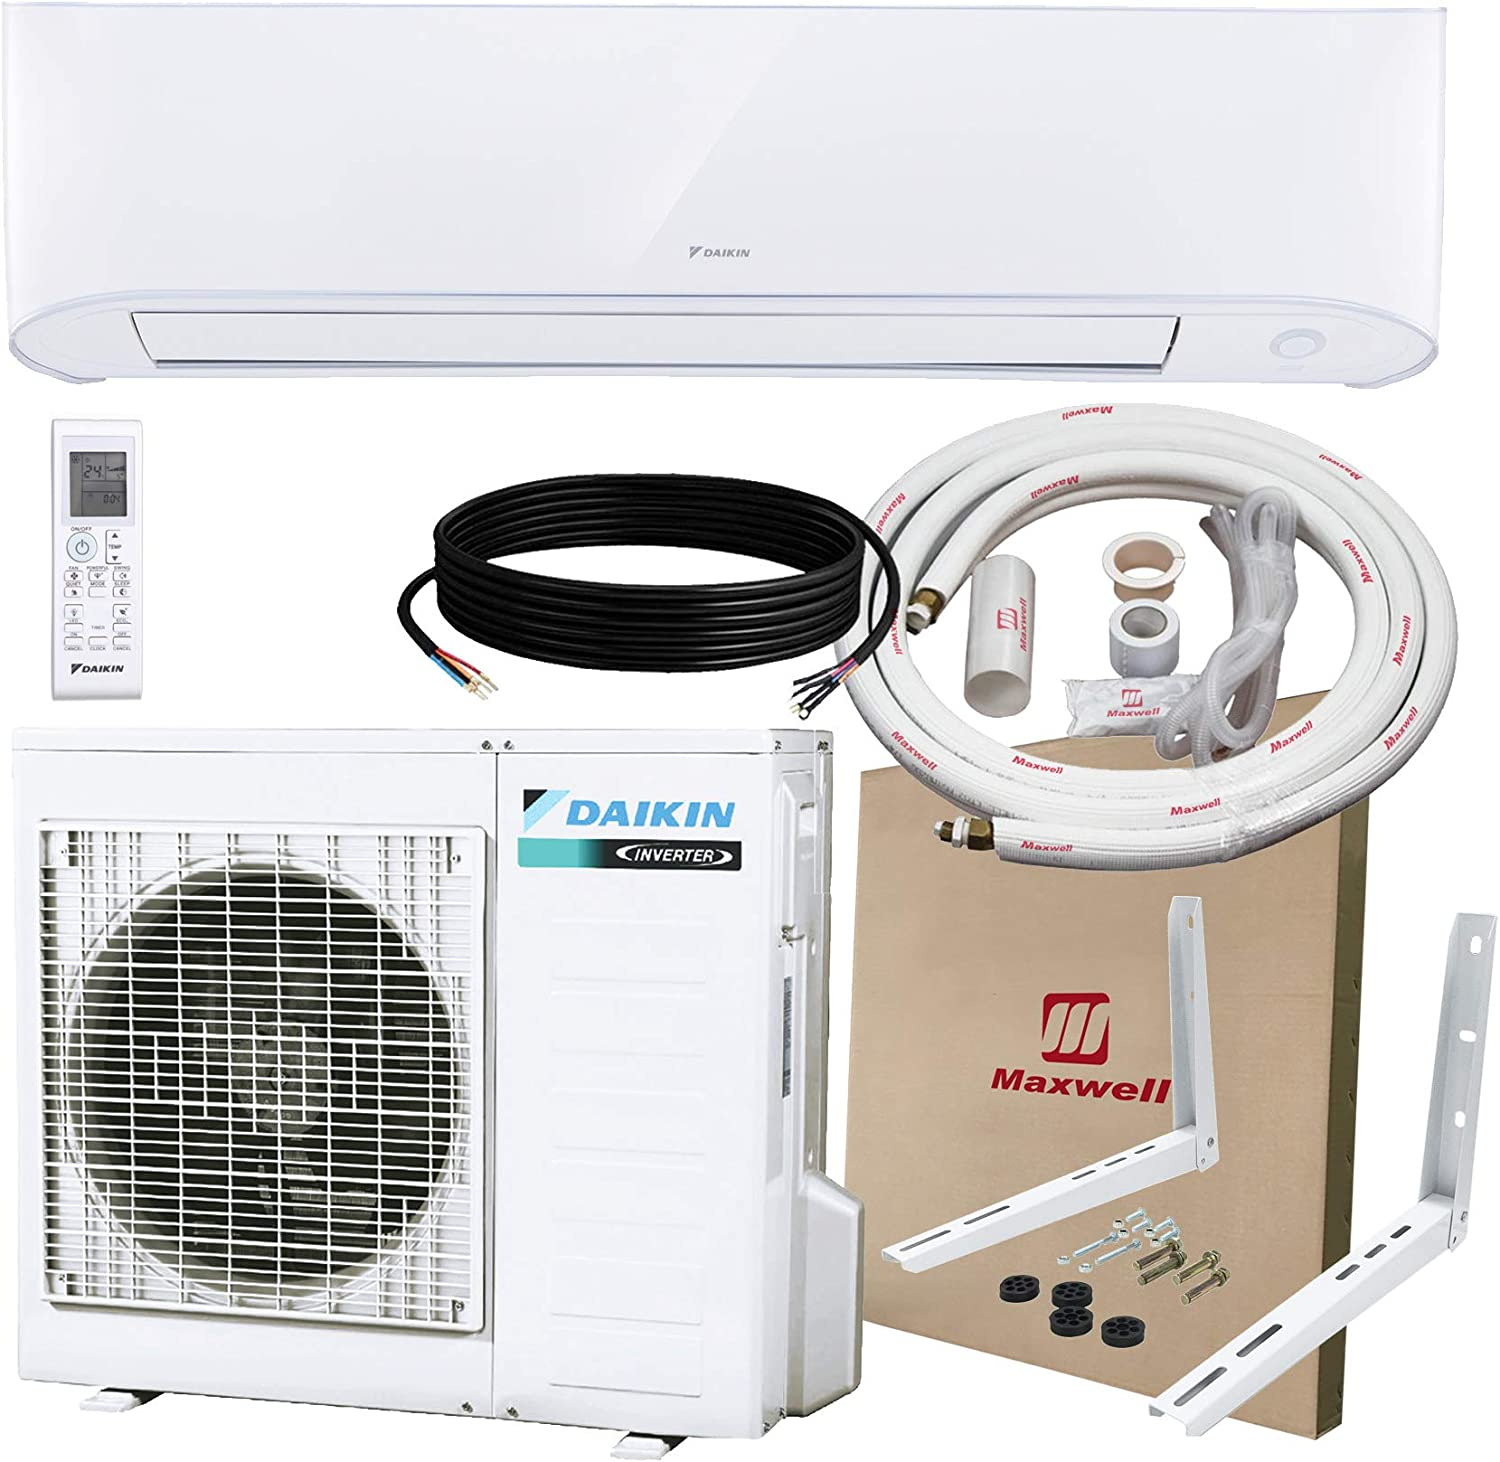 DAIKIN 12,000 BTU 17 SEER Wall-Mounted Ductless Mini-Split A/C Heat Pump System Maxwell 15-ft Installation Kit & Wall Bracket (230V) 10 Year Limited Warranty (12,000 BTU_208-230V)